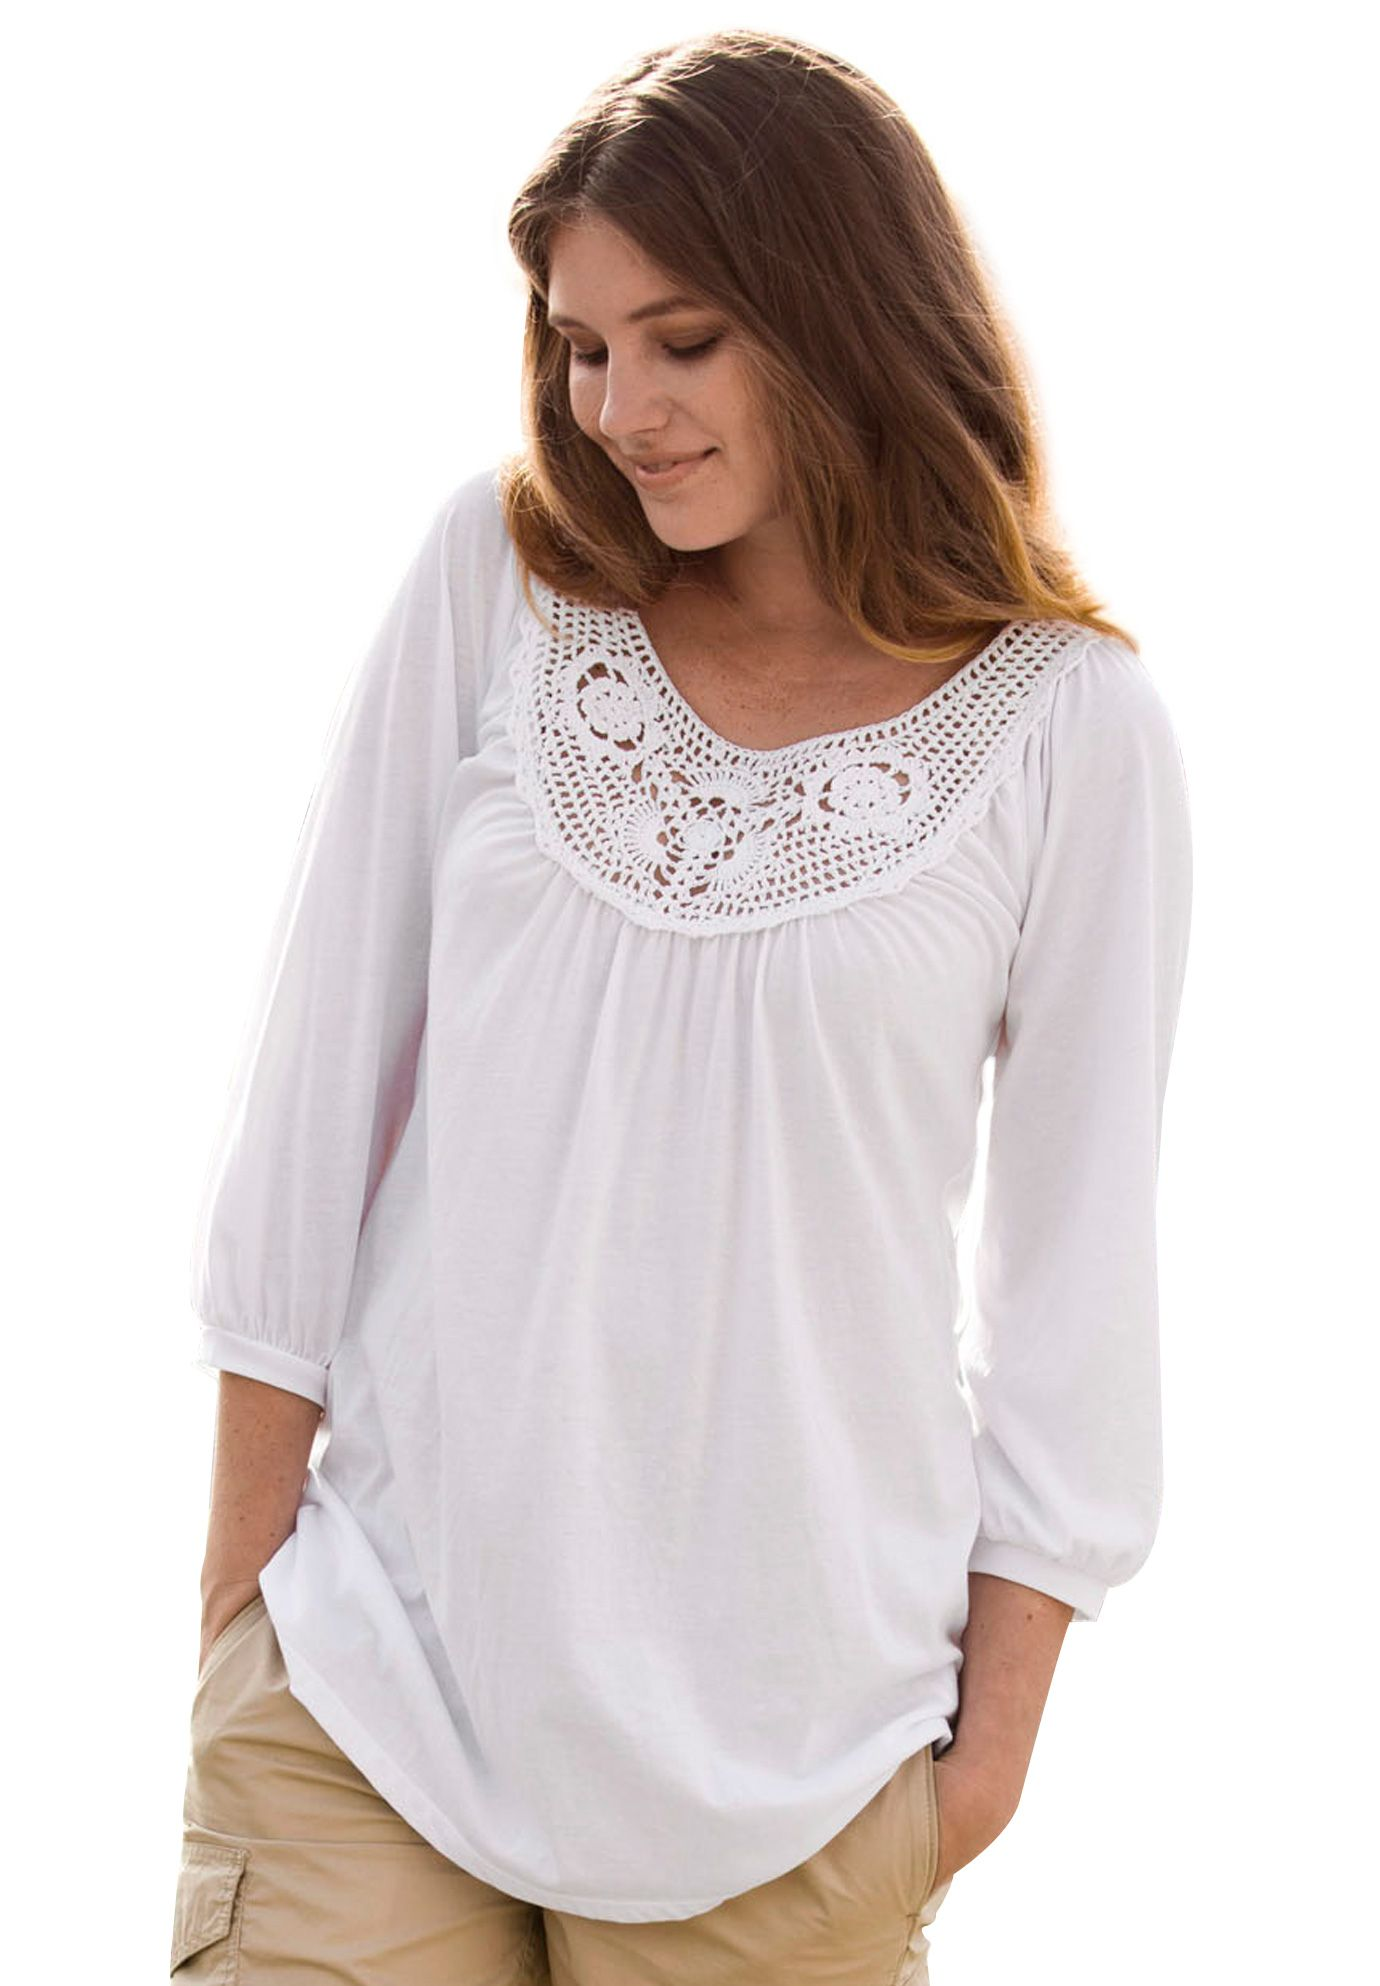 Tunic Top Open Crochet By Ellos 174 Plus Size Tunics